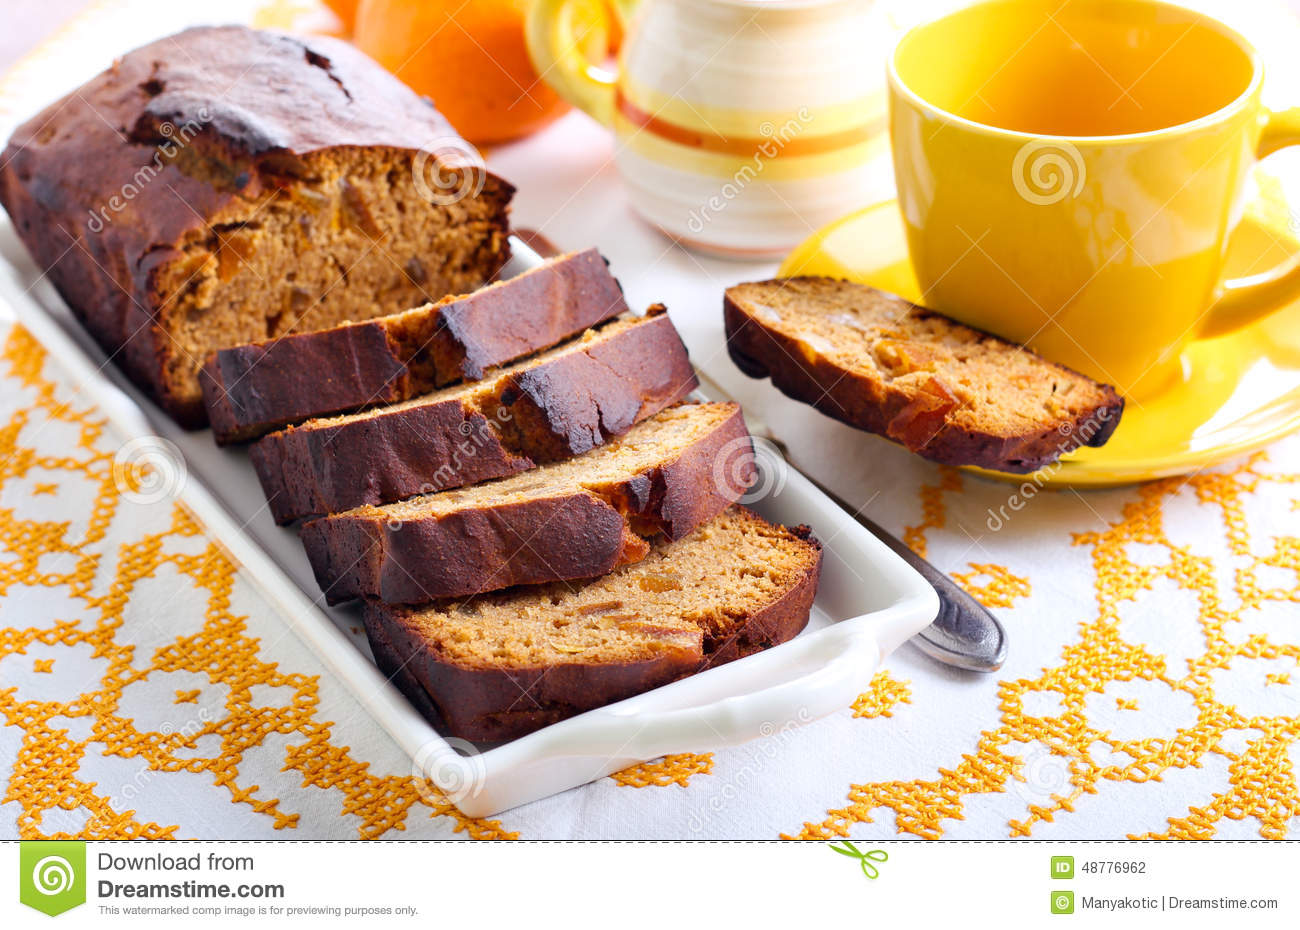 Honey Rye Loaf Cake Stock Photo - Image: 48776962